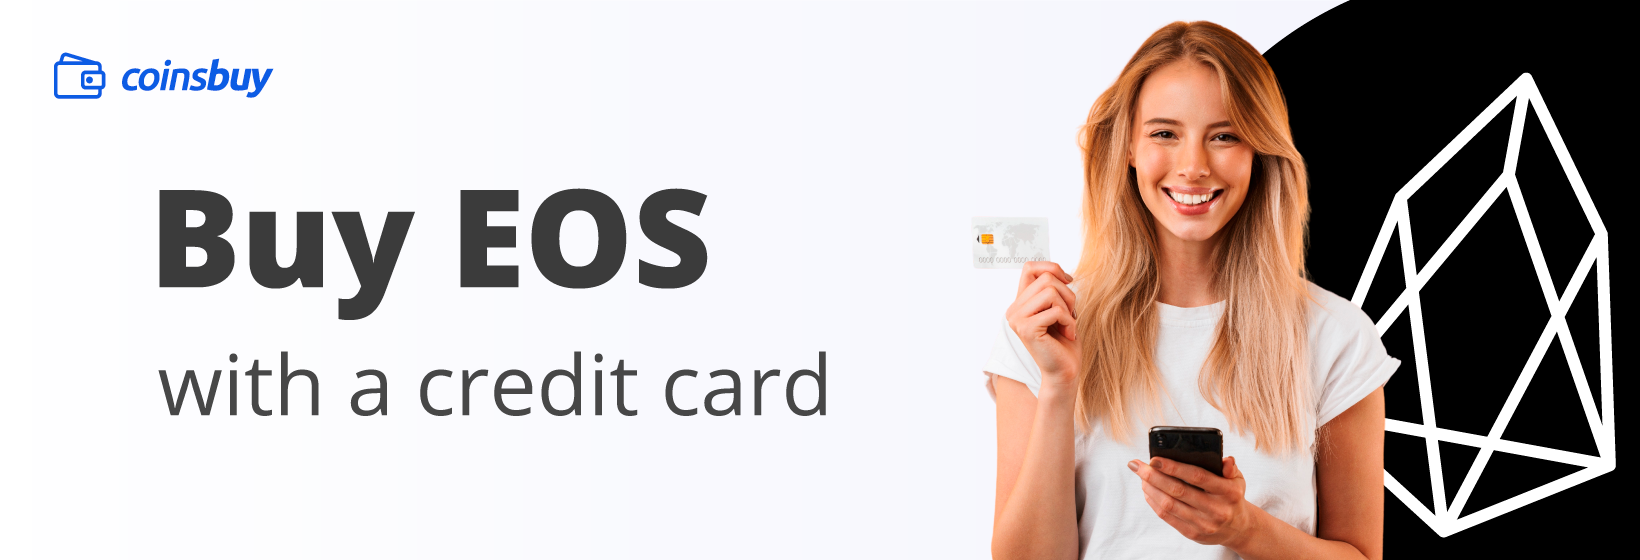 Buy EOS with credit card